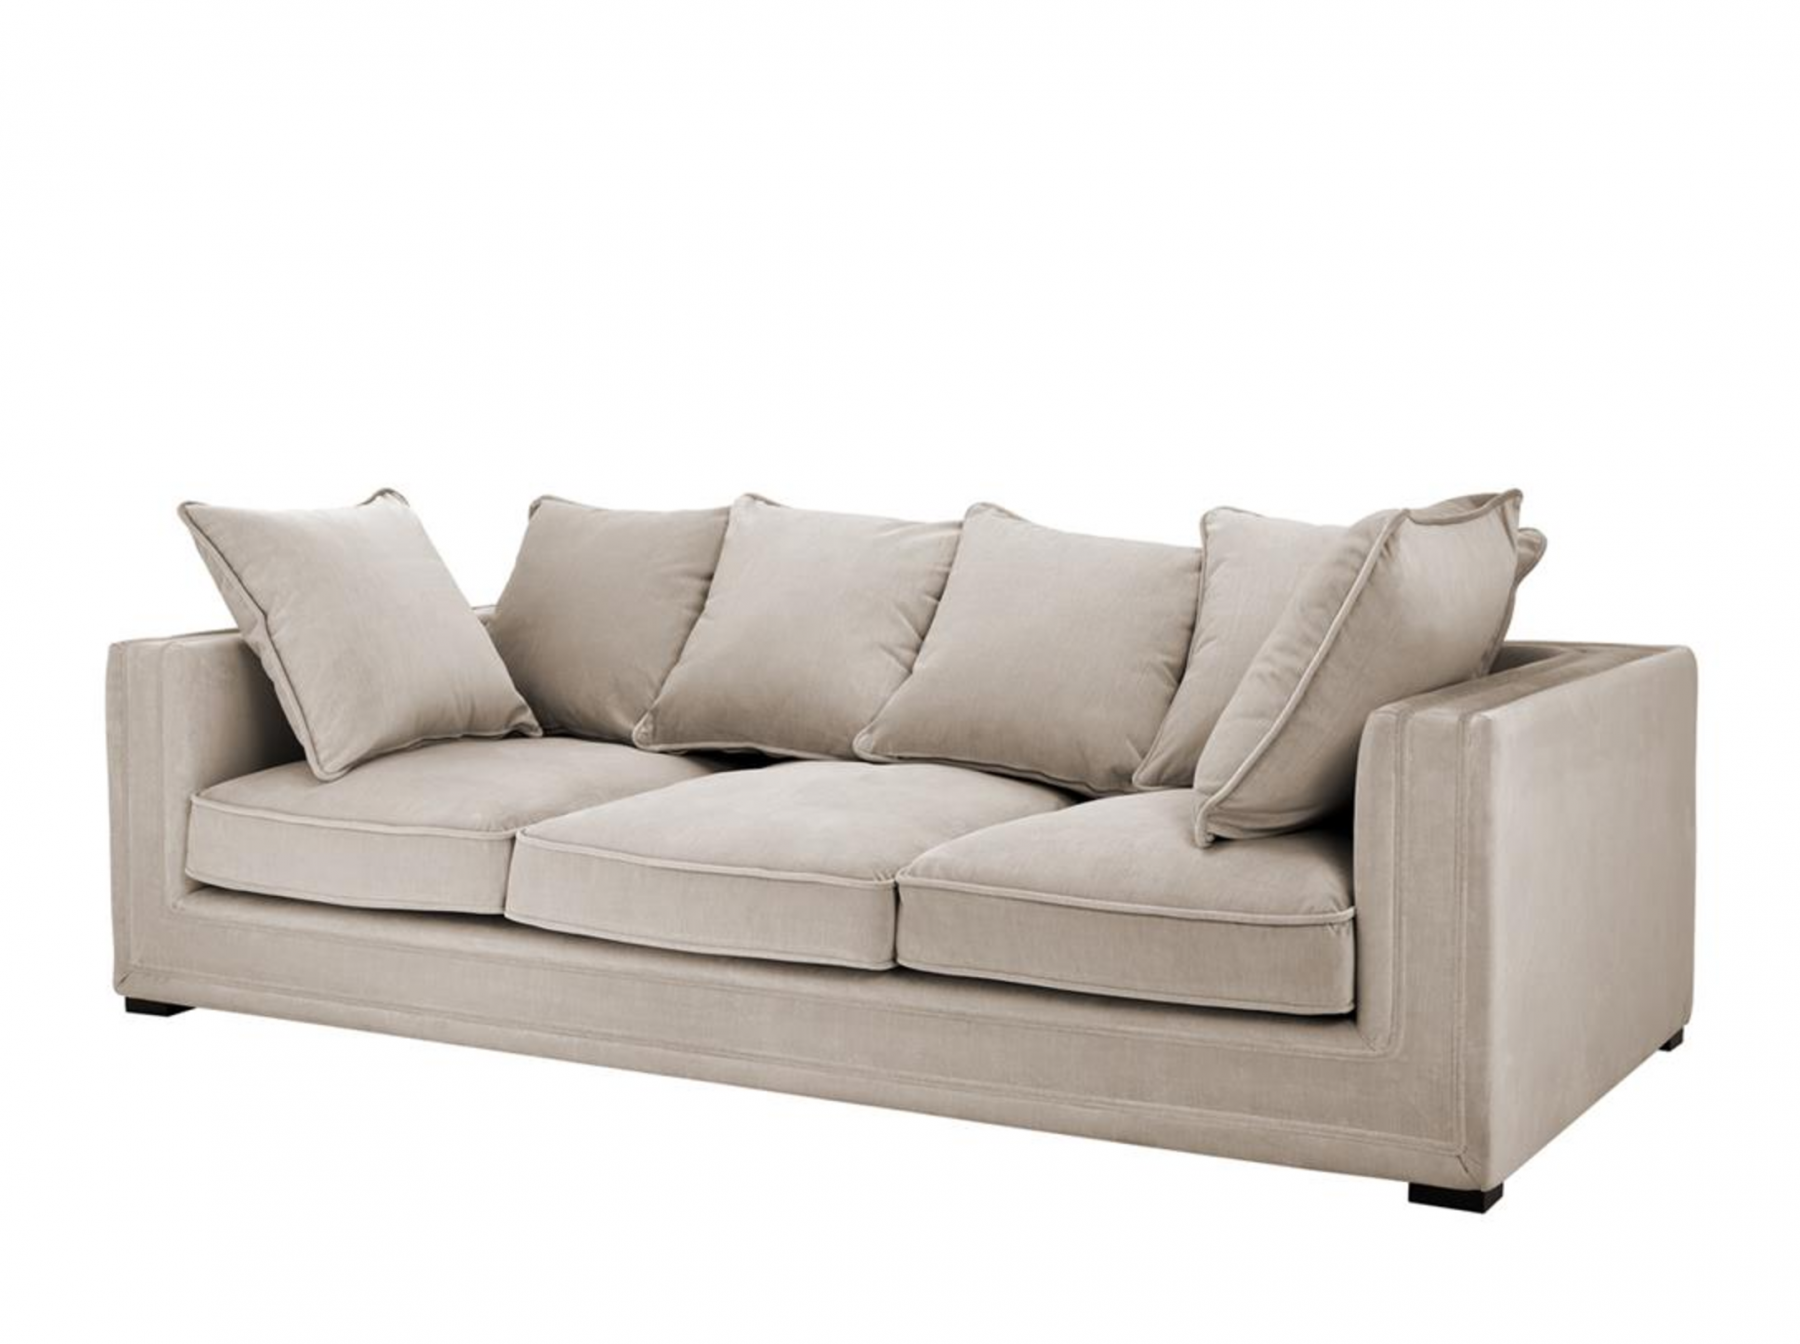 Menorca Stone Grey Sofa Shop Now